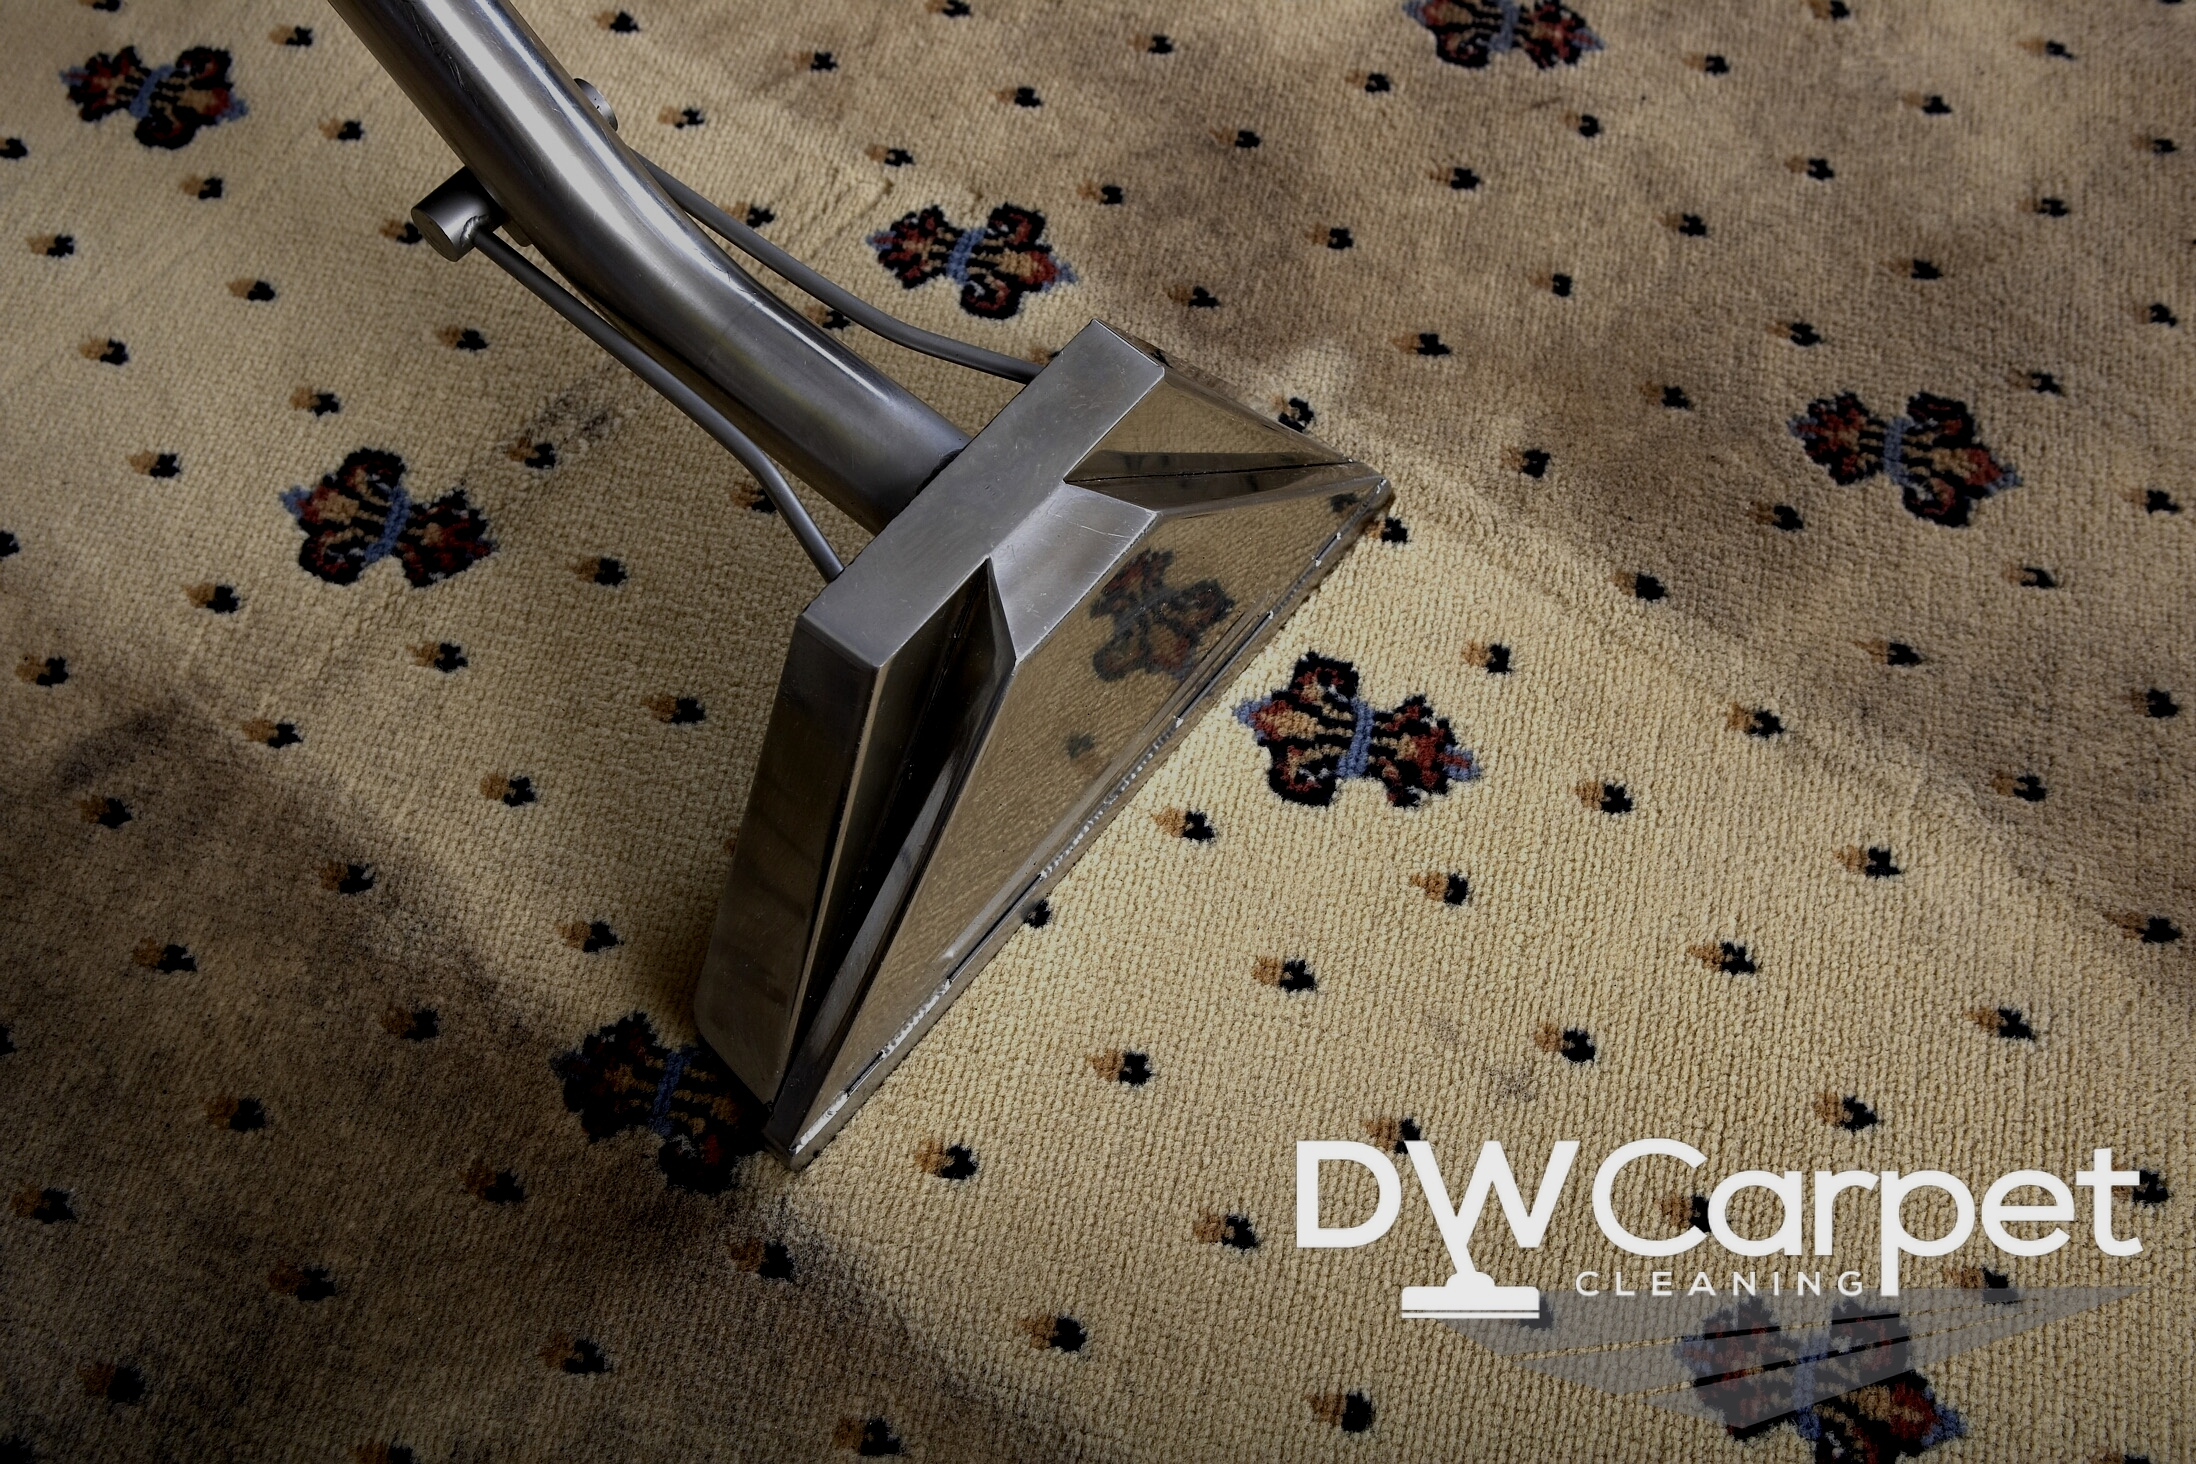 Rug-Cleaning-in-Singapore-Dw-Carpet-Cleaning-Singapore-3_wm